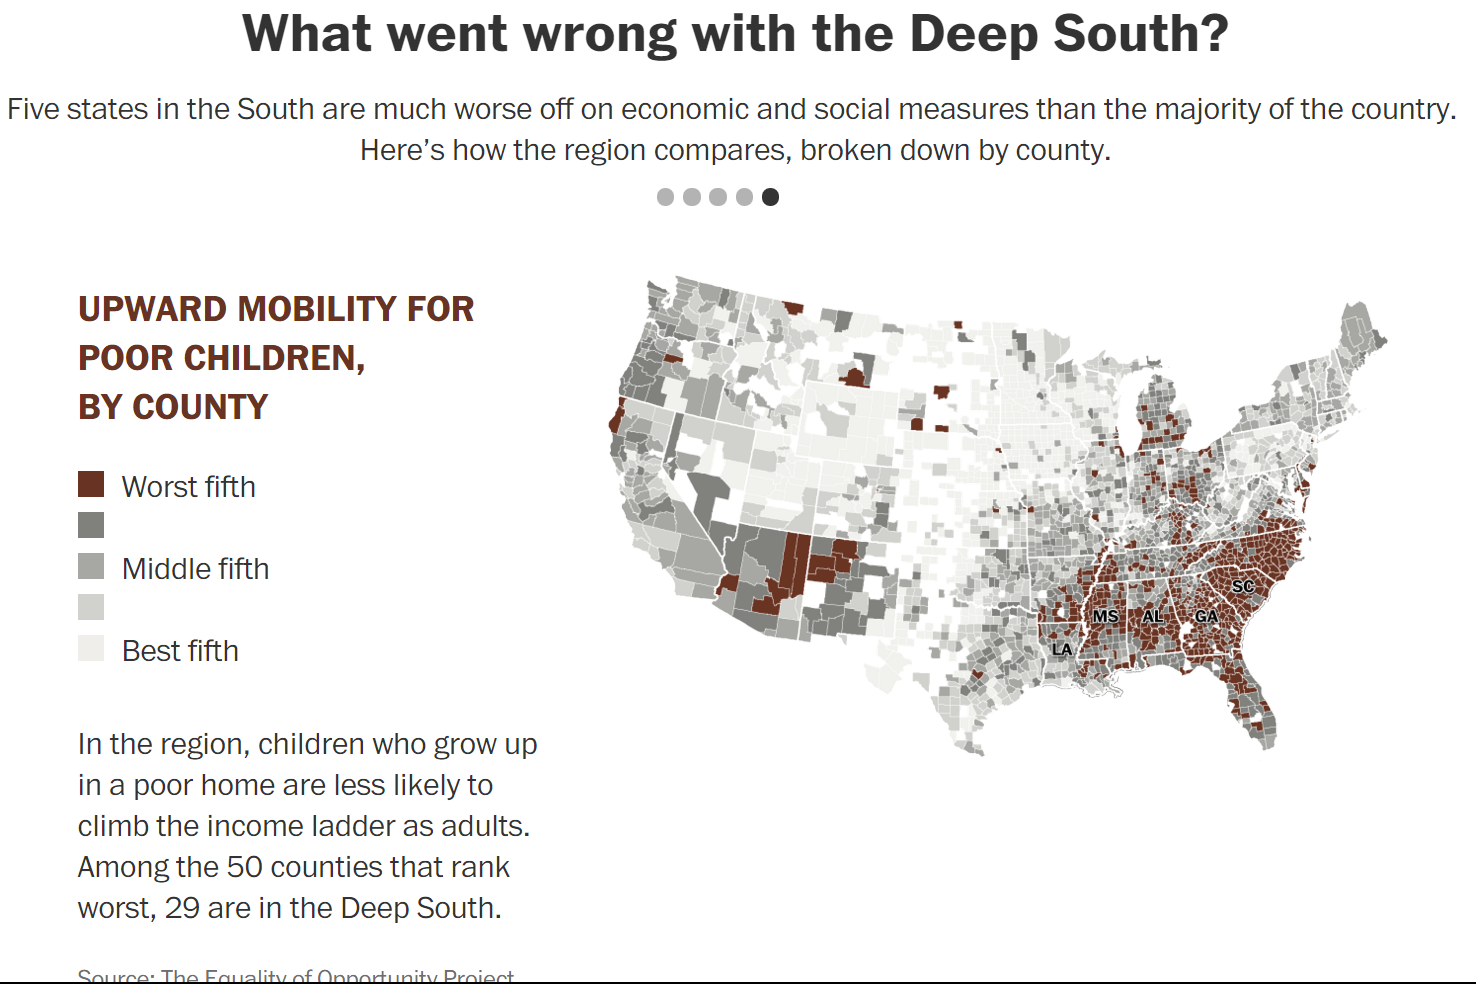 map 6 upward mobility for poor children by county in the us